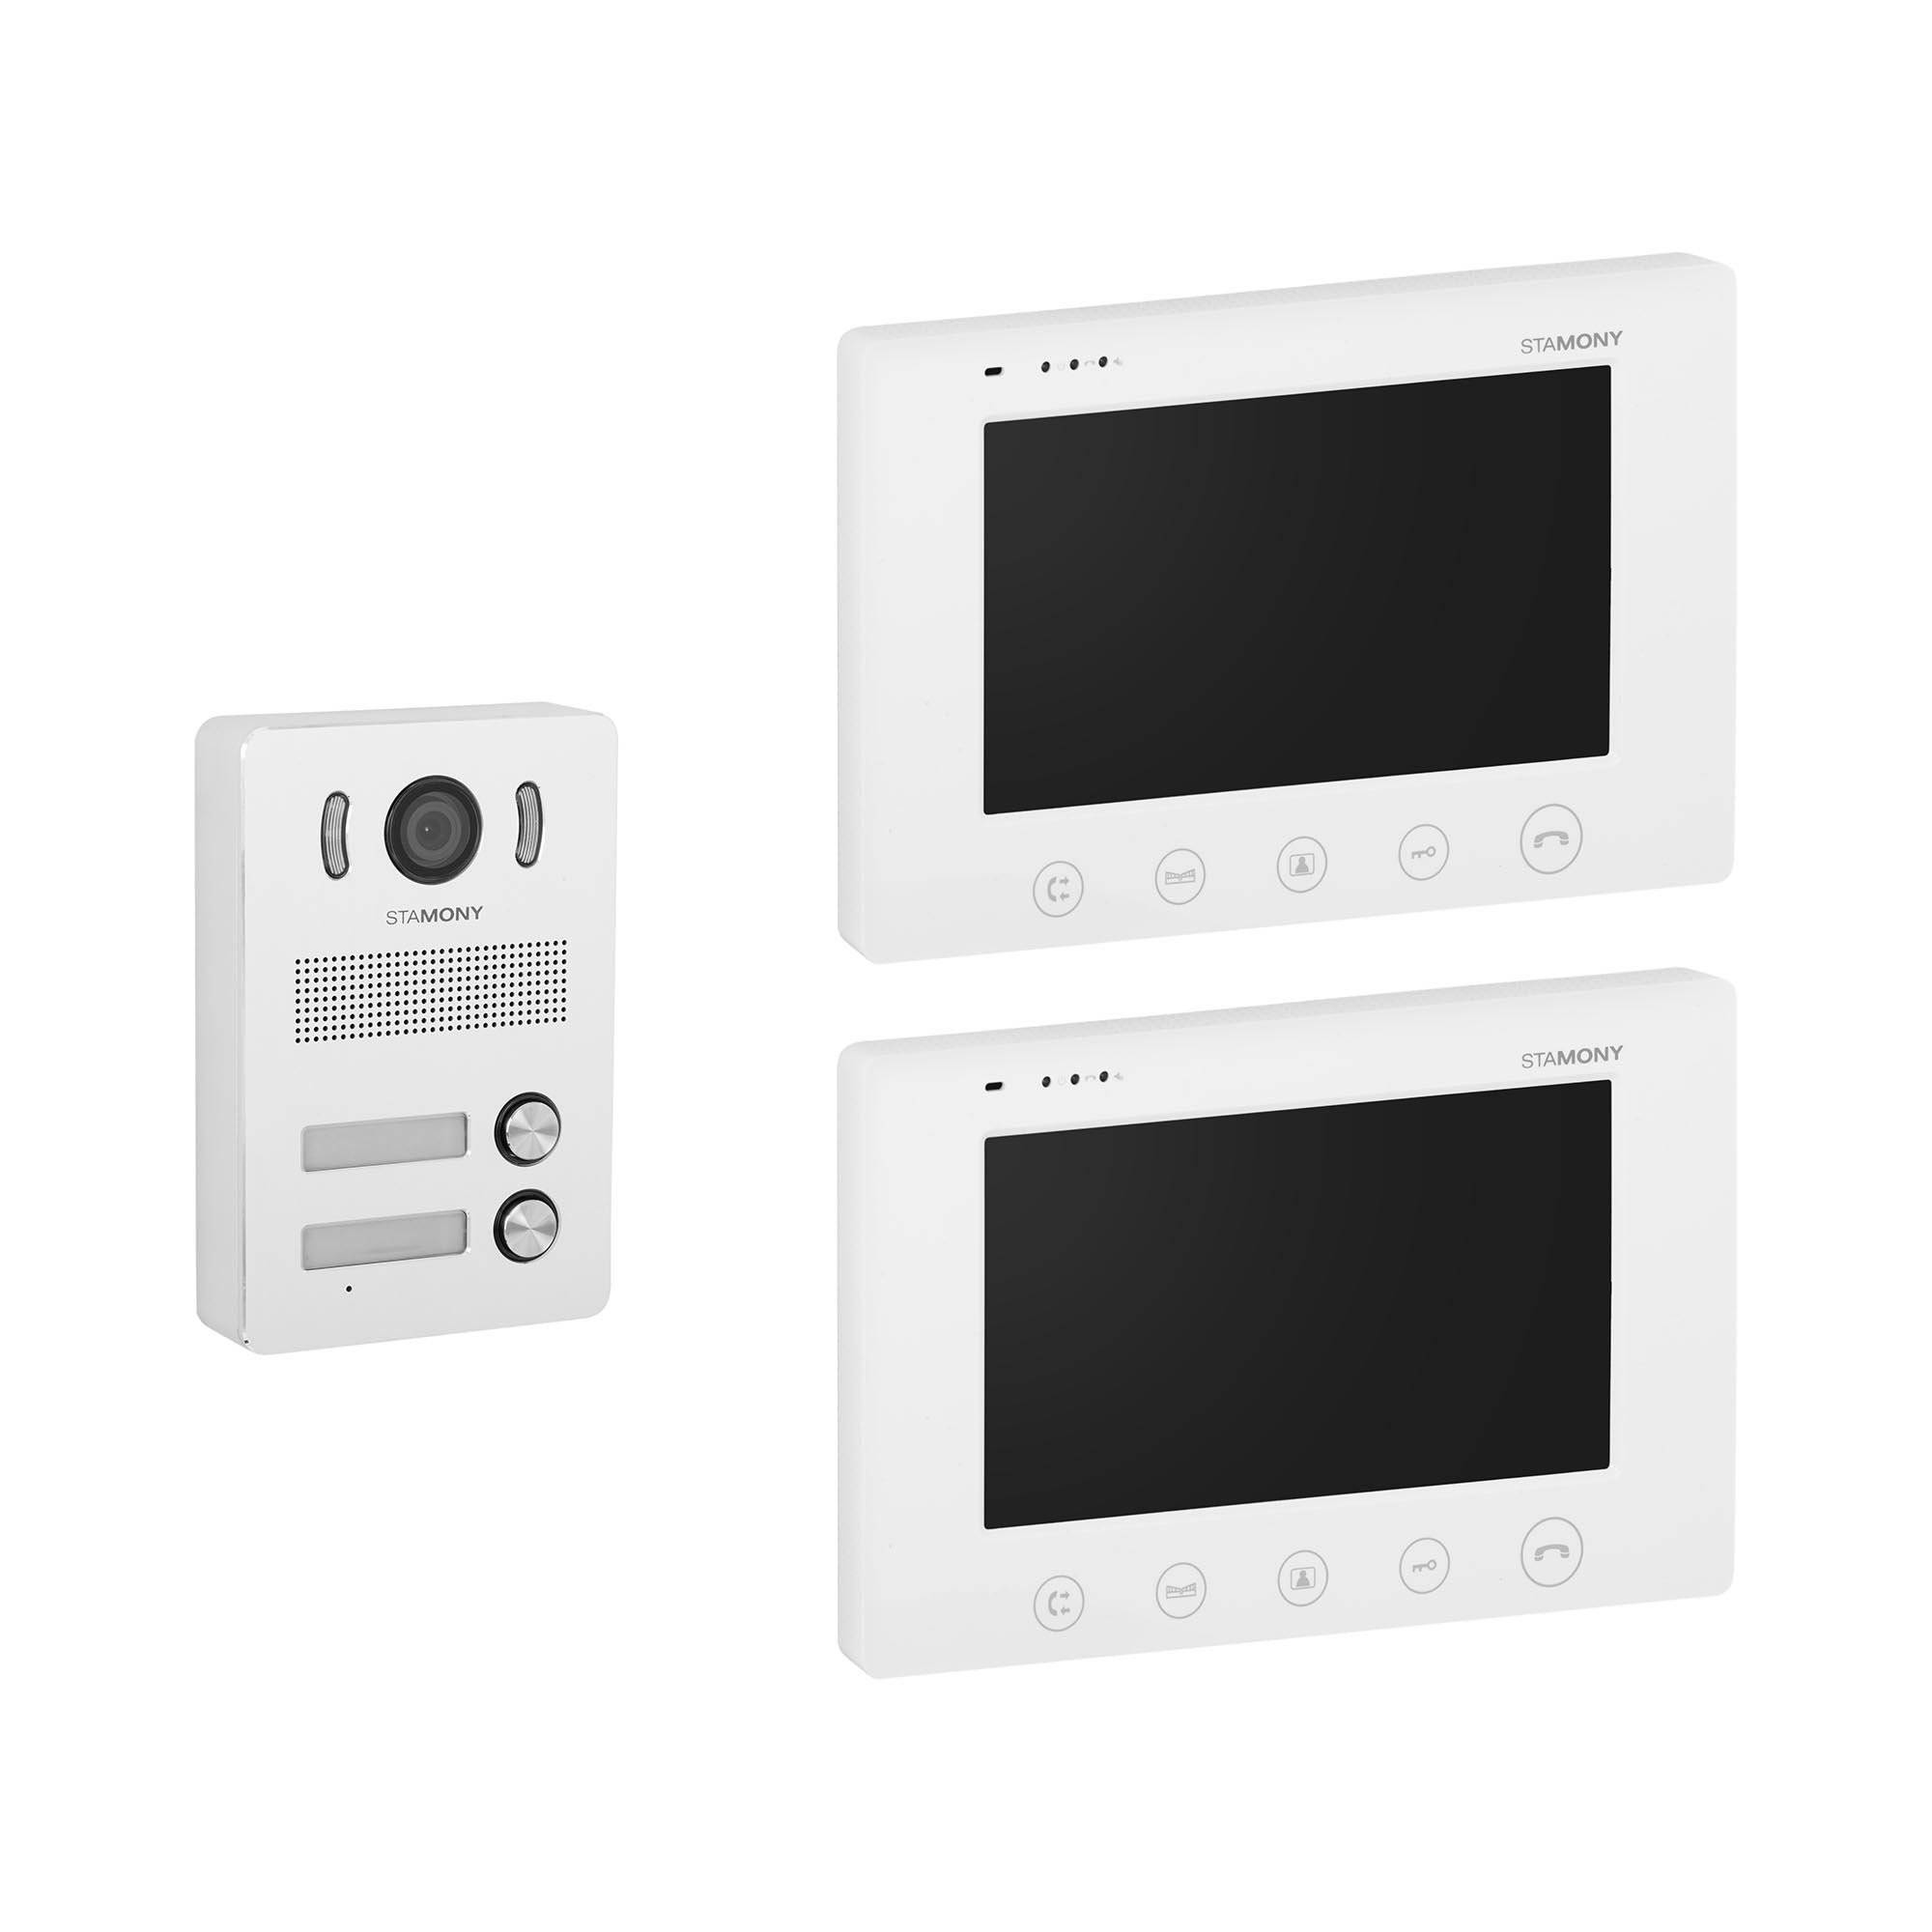 Stamony Video Intercom System - 2 monitors - 17.8 cm display ST-VP-200